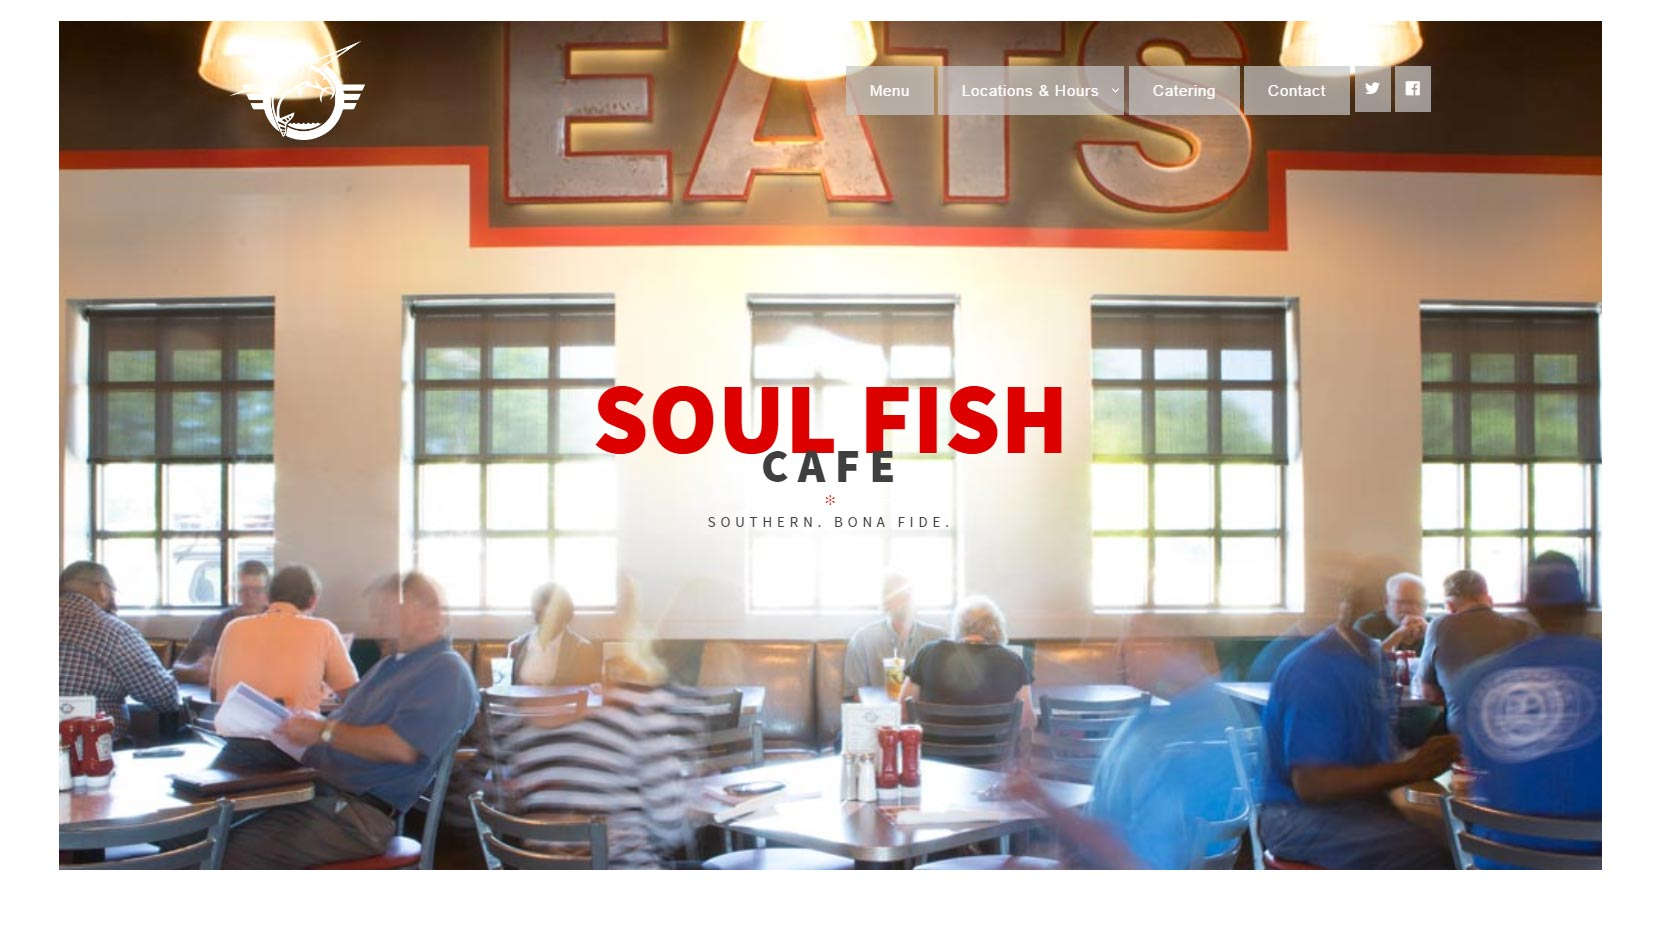 Soul Fish Cafe - responsive WordPress website